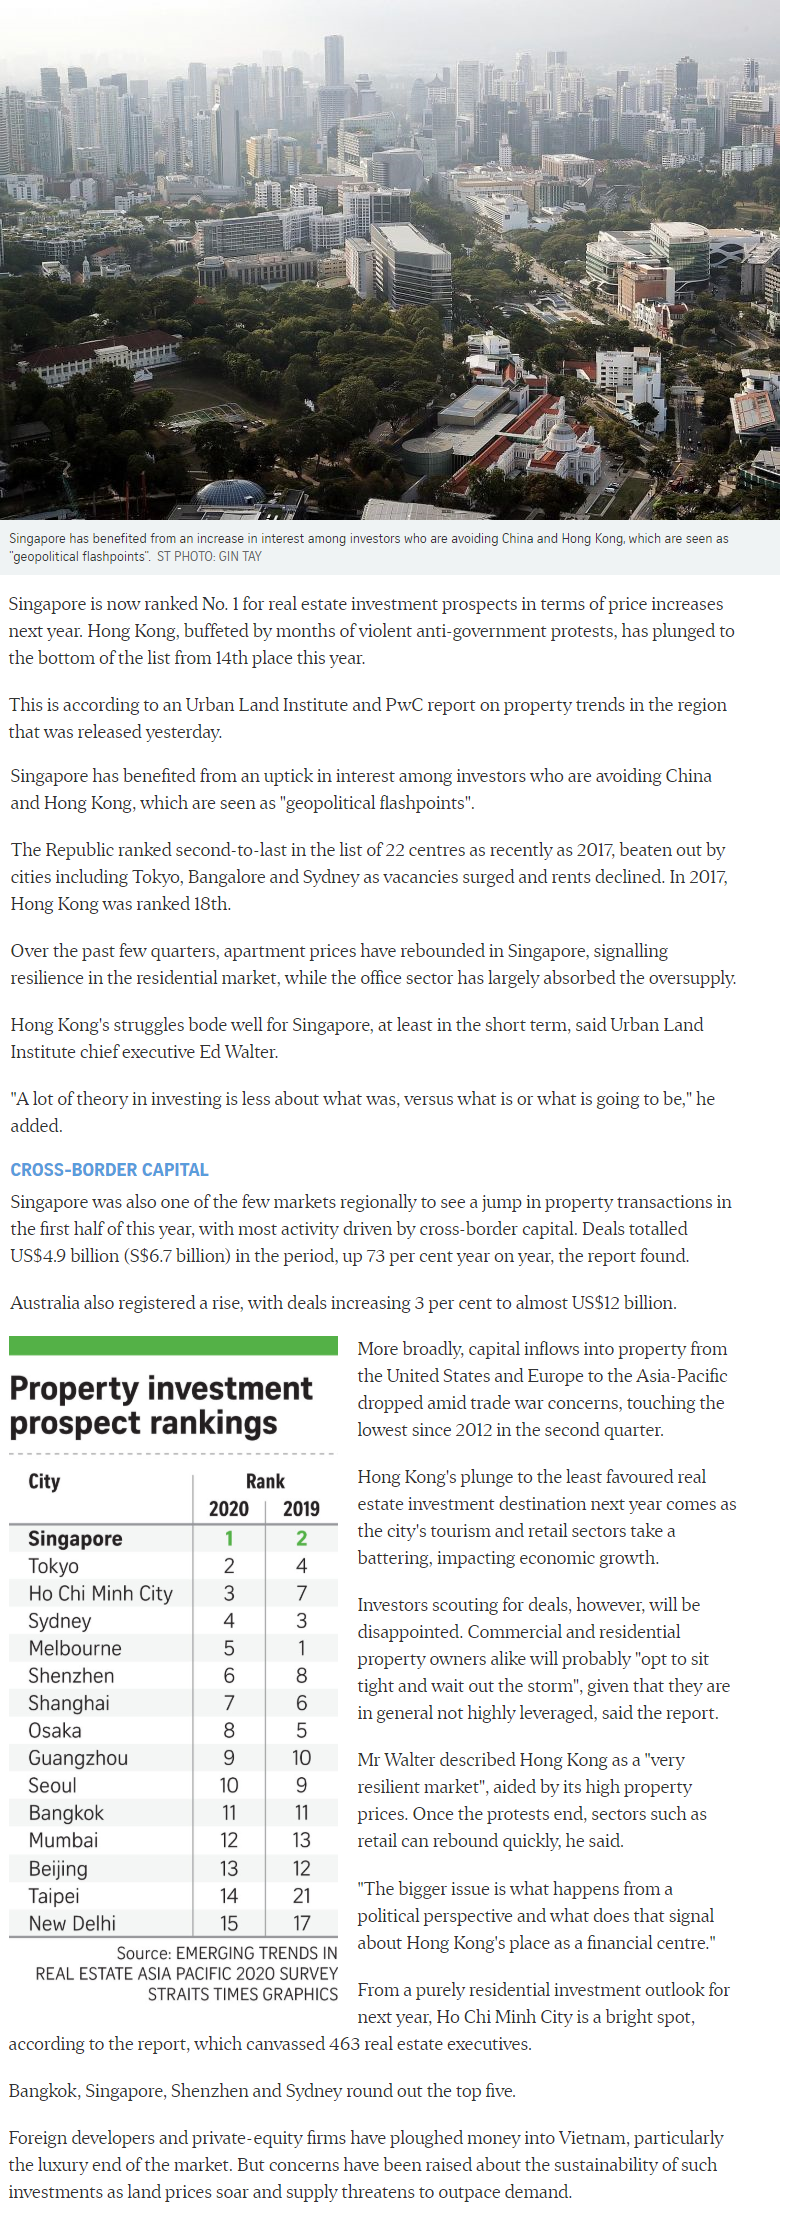 One Bernam - Singapore Tops Region For Property Investment Prospects